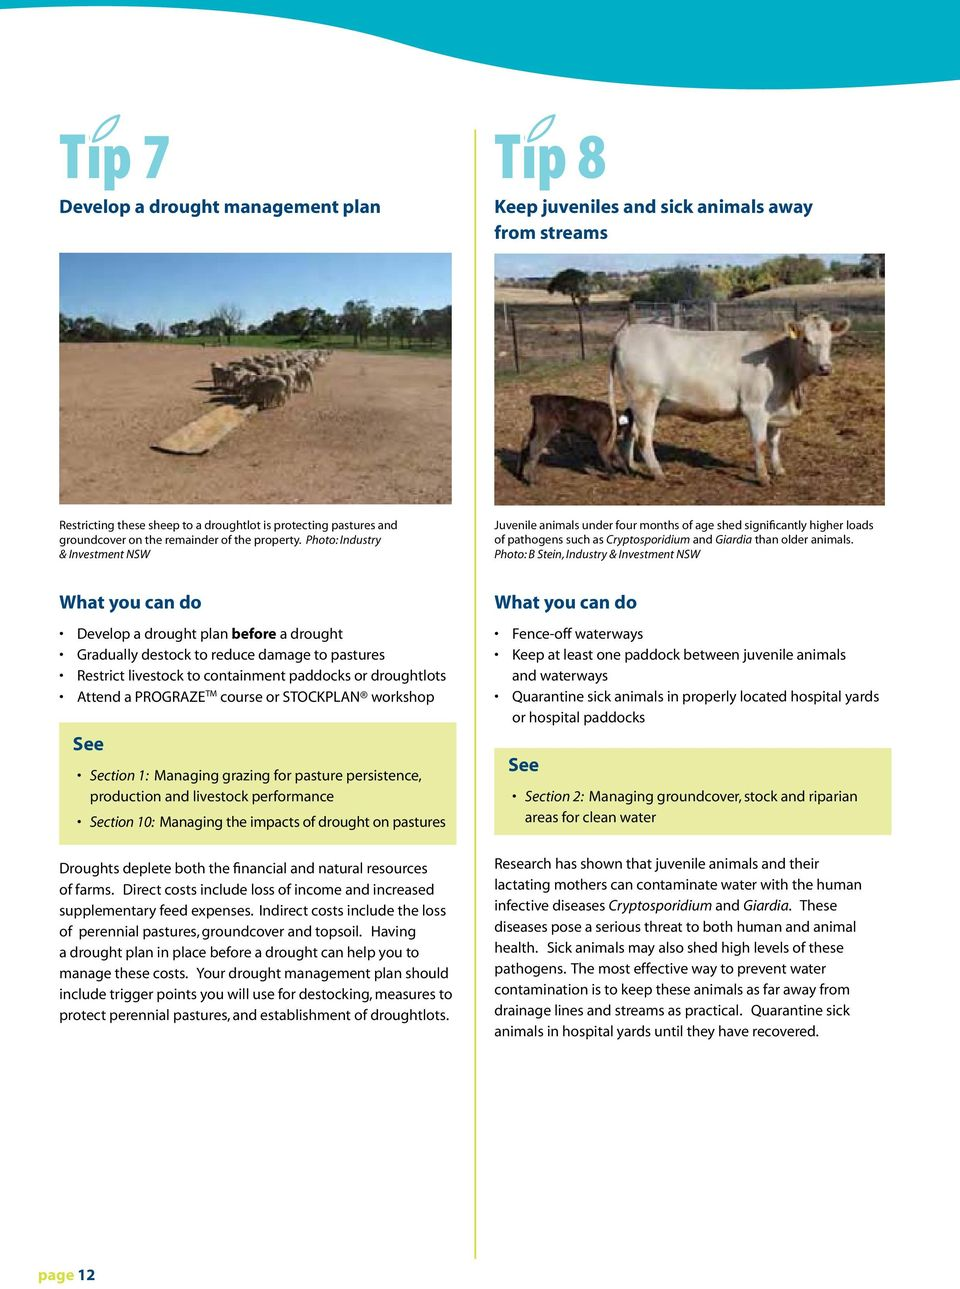 Photo: B Stein, Industry & Investment NSW What you can do Develop a drought plan before a drought Gradually destock to reduce damage to pastures Restrict livestock to containment paddocks or